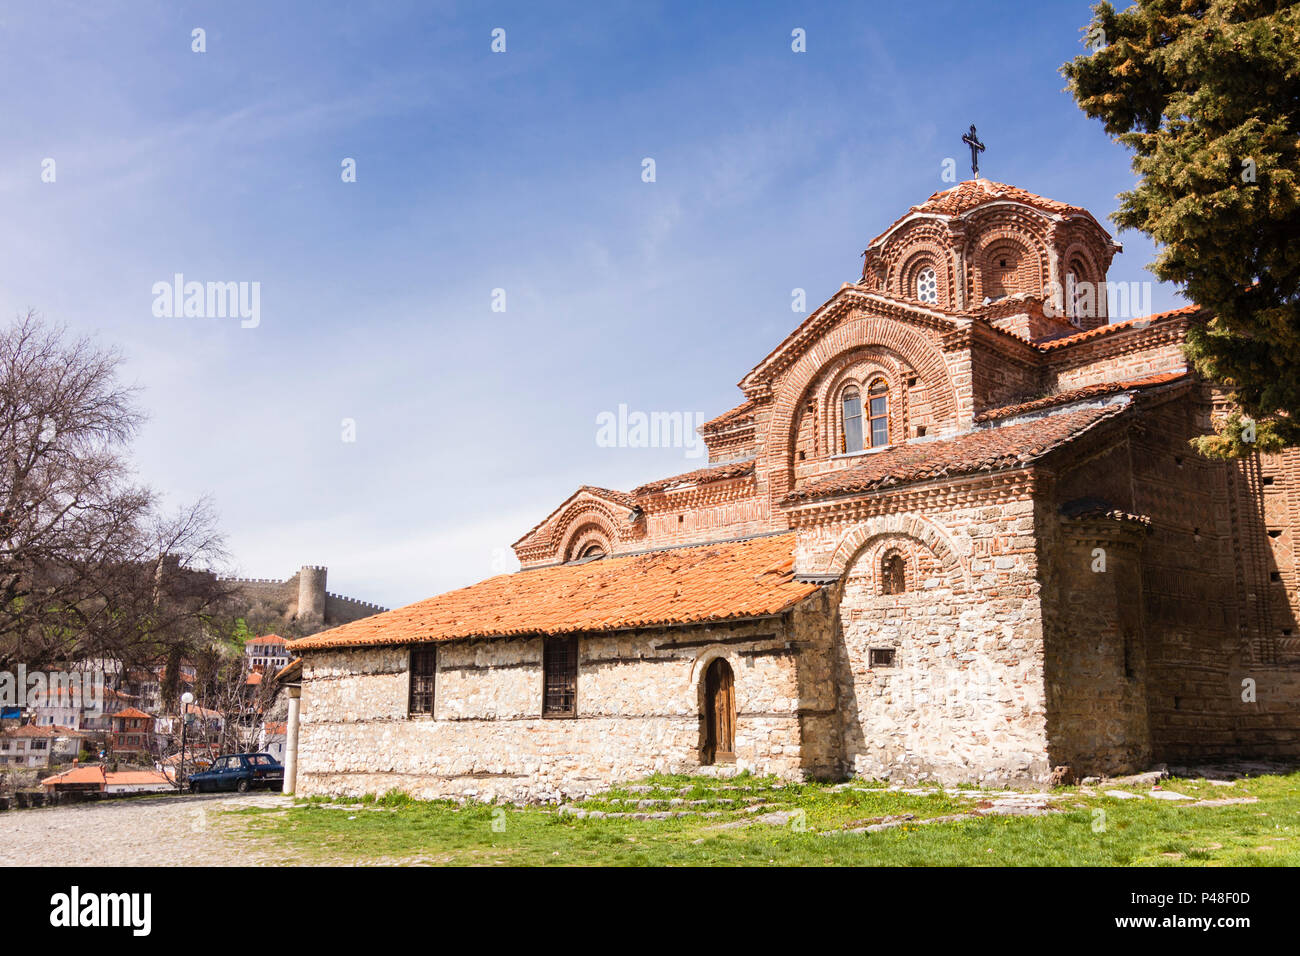 Ohrid, Republic of Macedonia : Holy Mother of God Peribleptos (1295),  one of the oldest churches in the Unesco listed old town of Ohrid - Stock Image